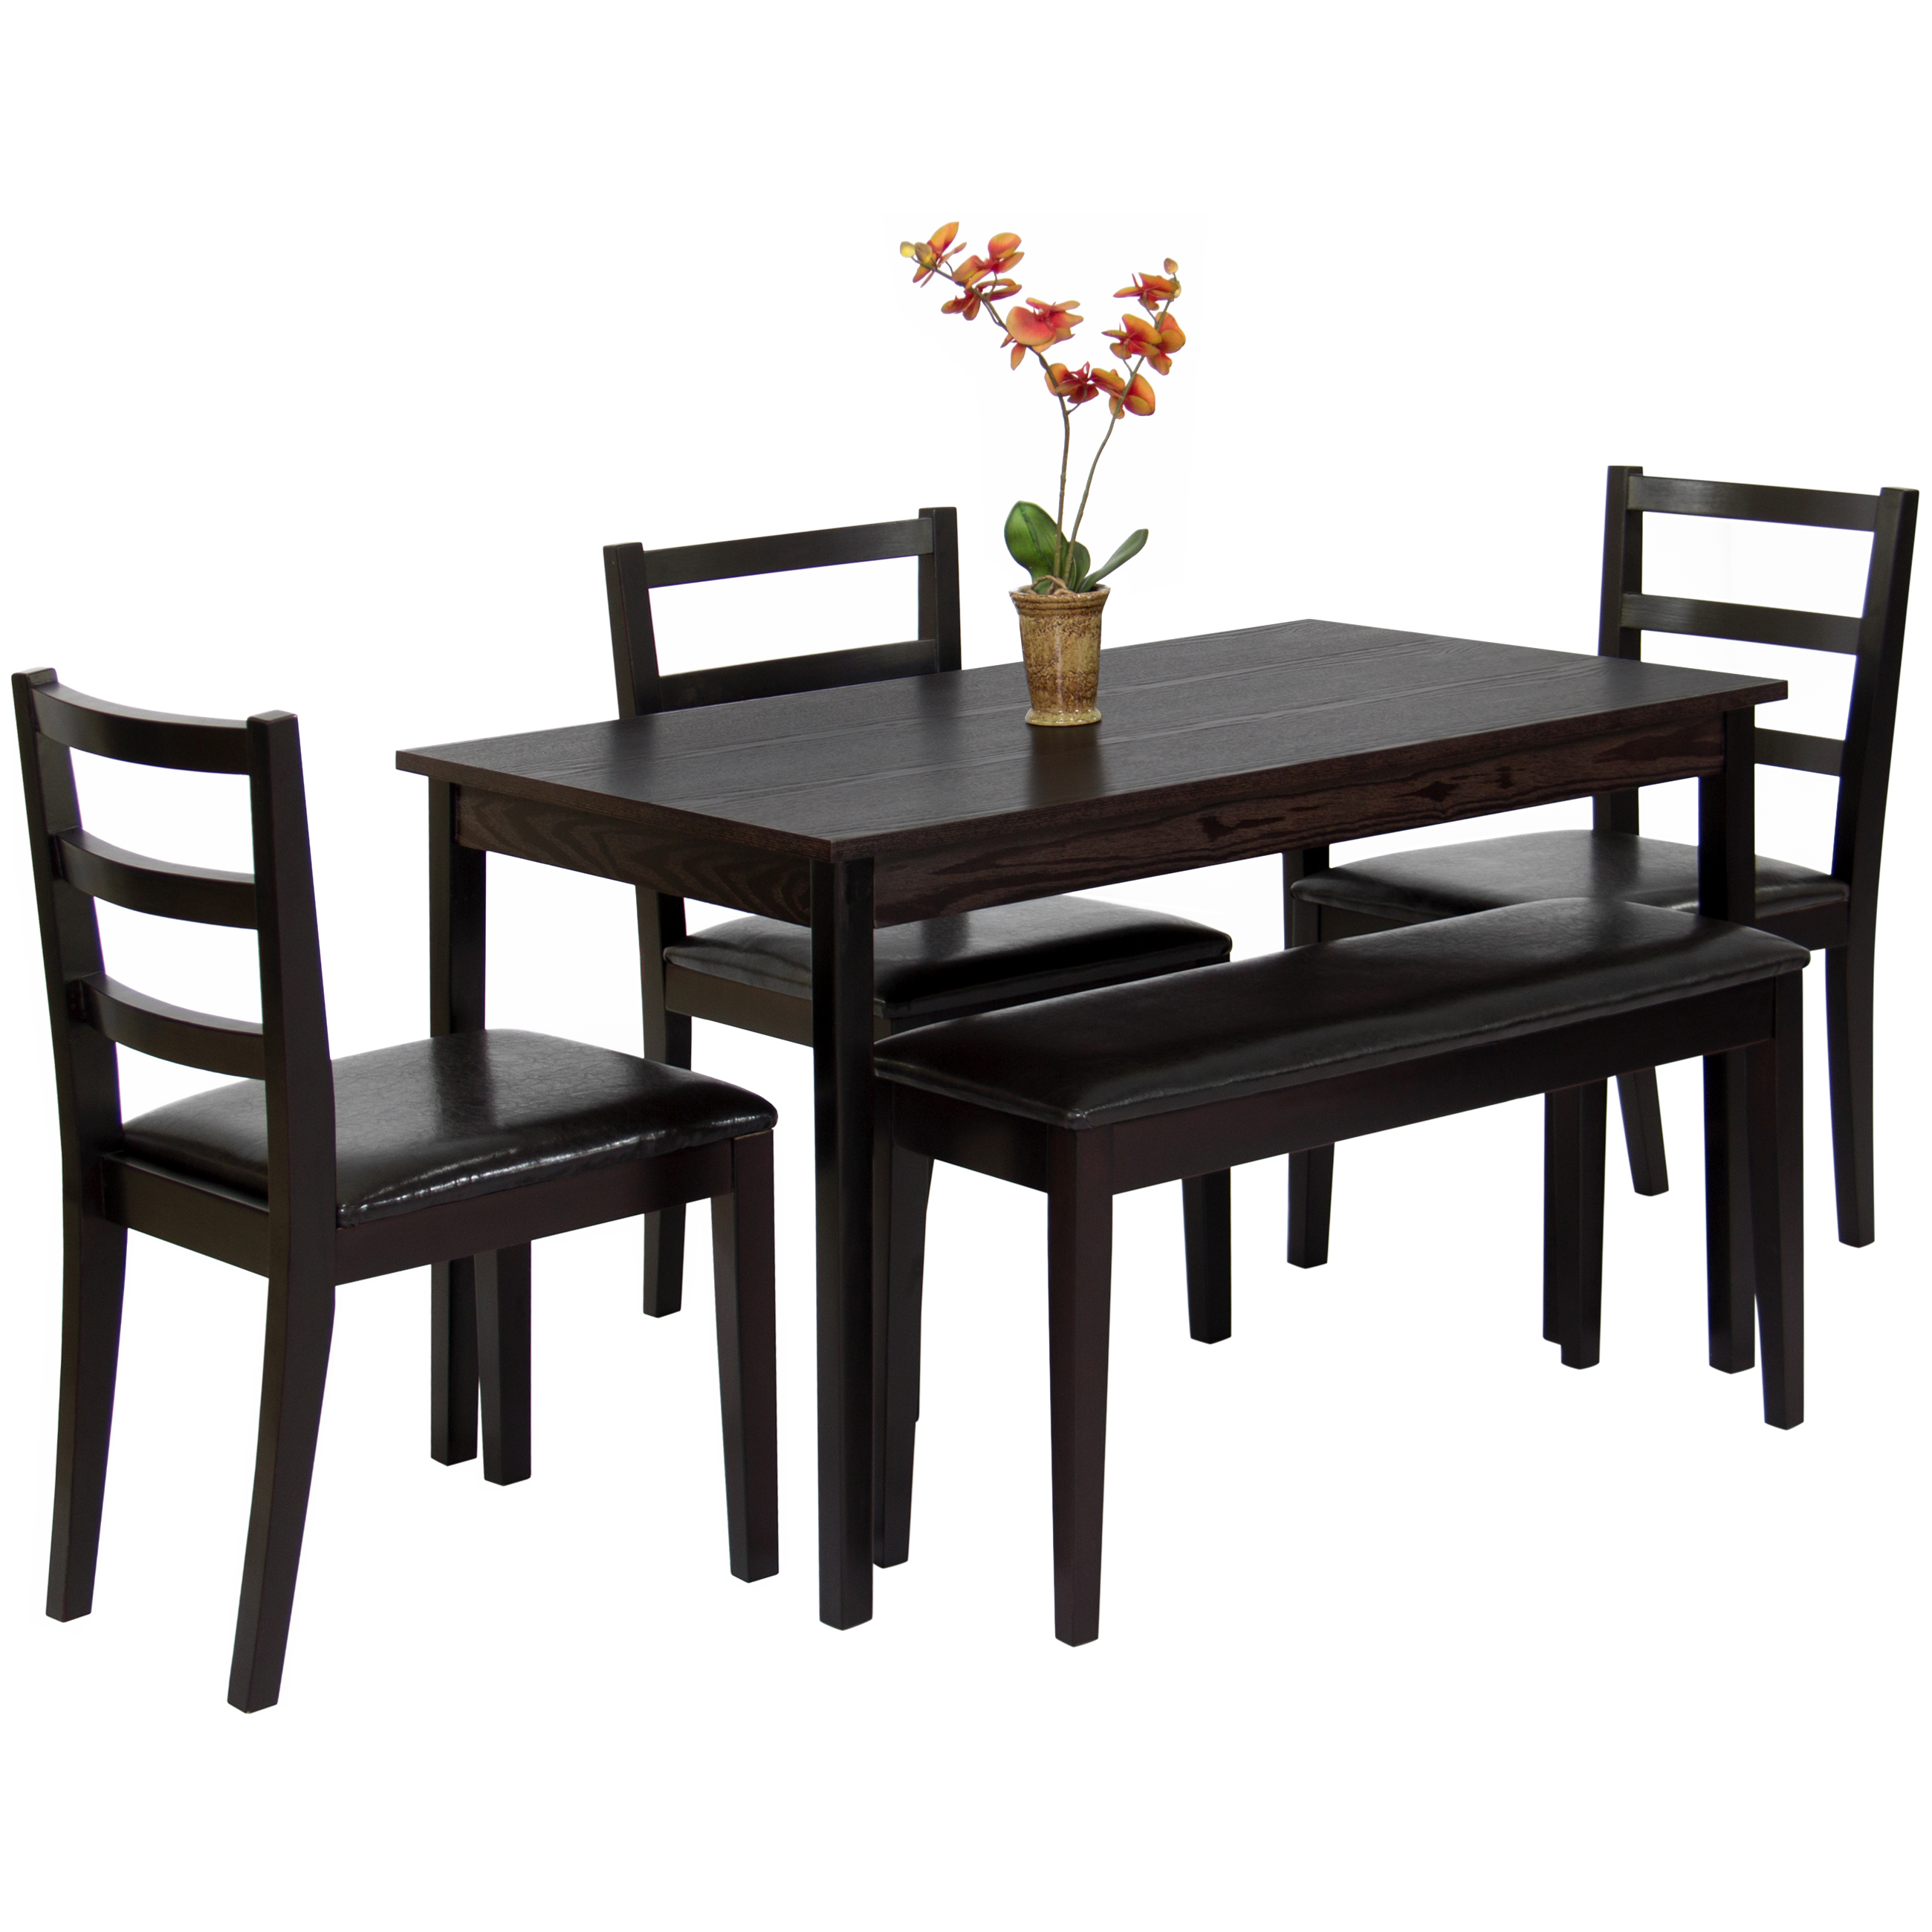 Best Choice Products 5 Piece Wood Dining Table Set W/ Bench, 3 Chairs